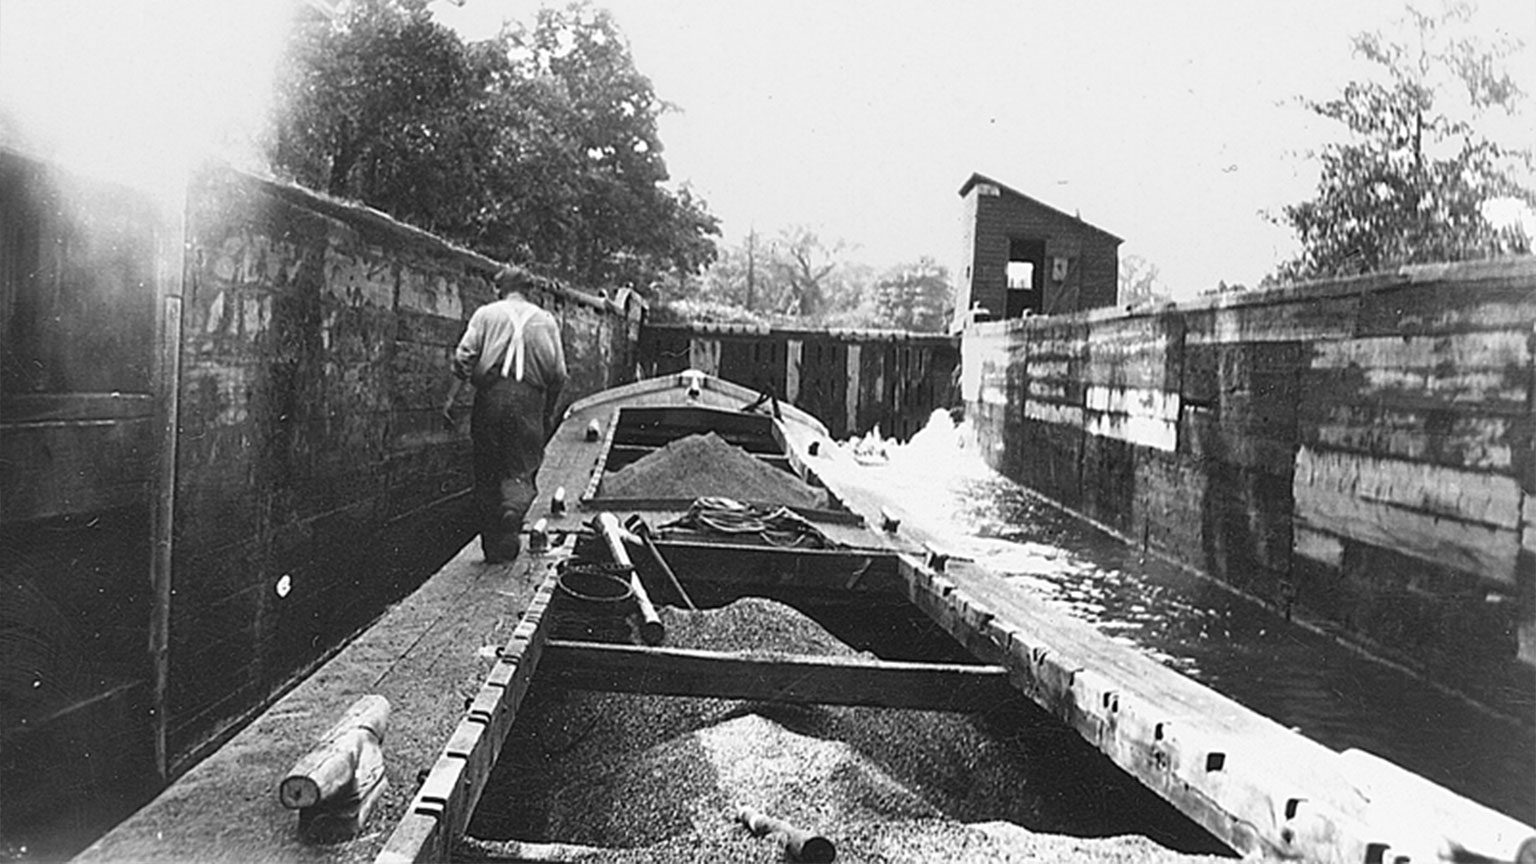 This photo shows the coal bins in his canal boat full of coal as the captain guides his boat into the lock.